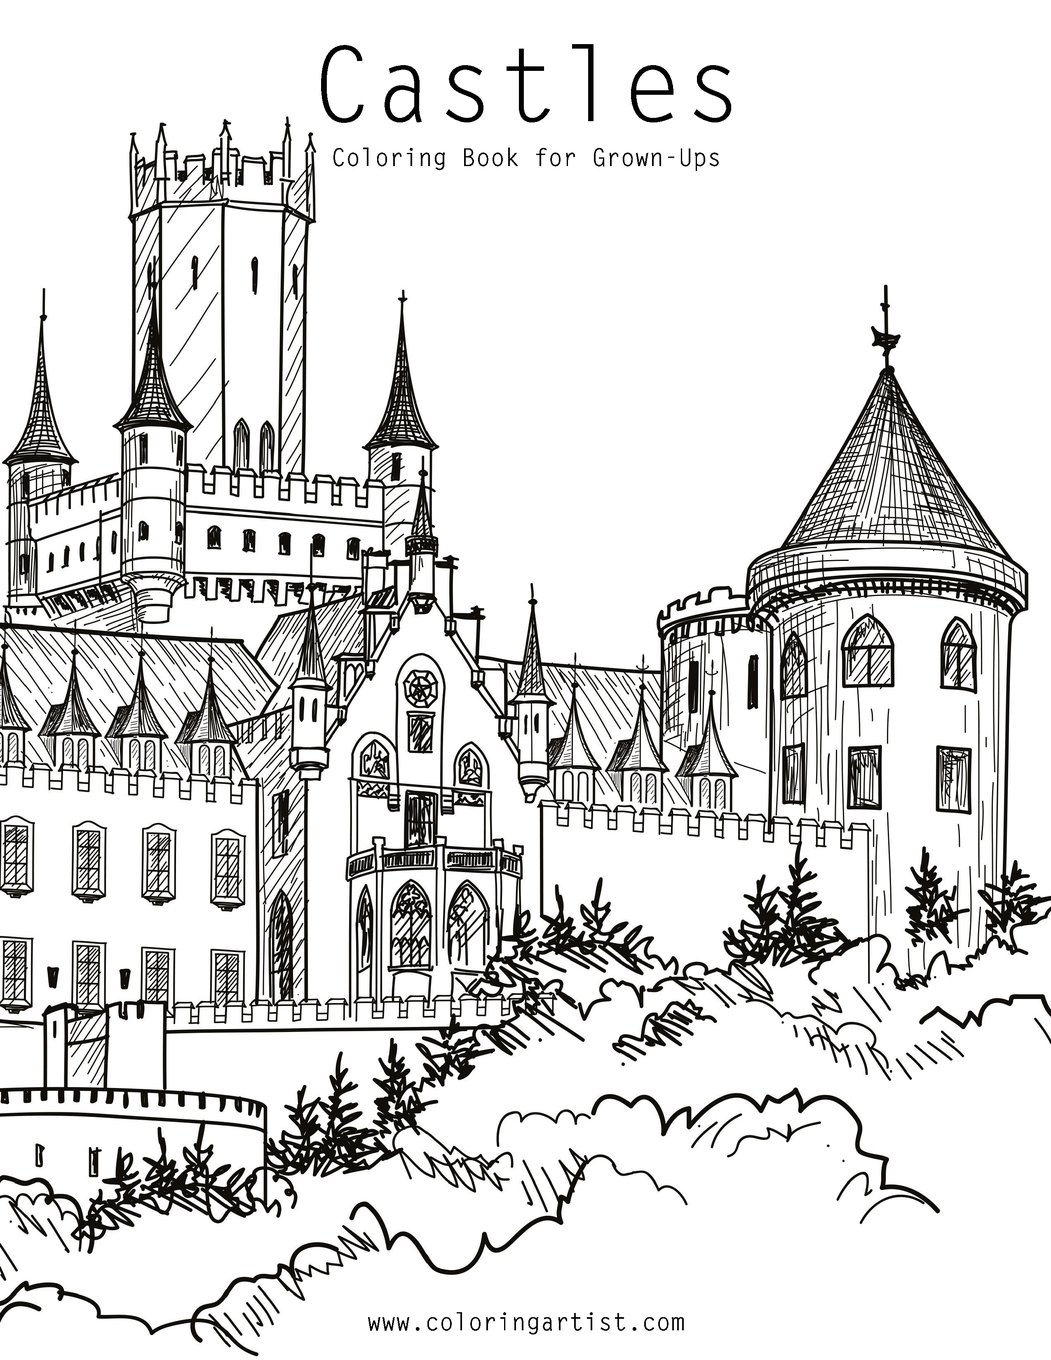 - Amazon.com: Castles Coloring Book For Grown-Ups 1 (Volume 1